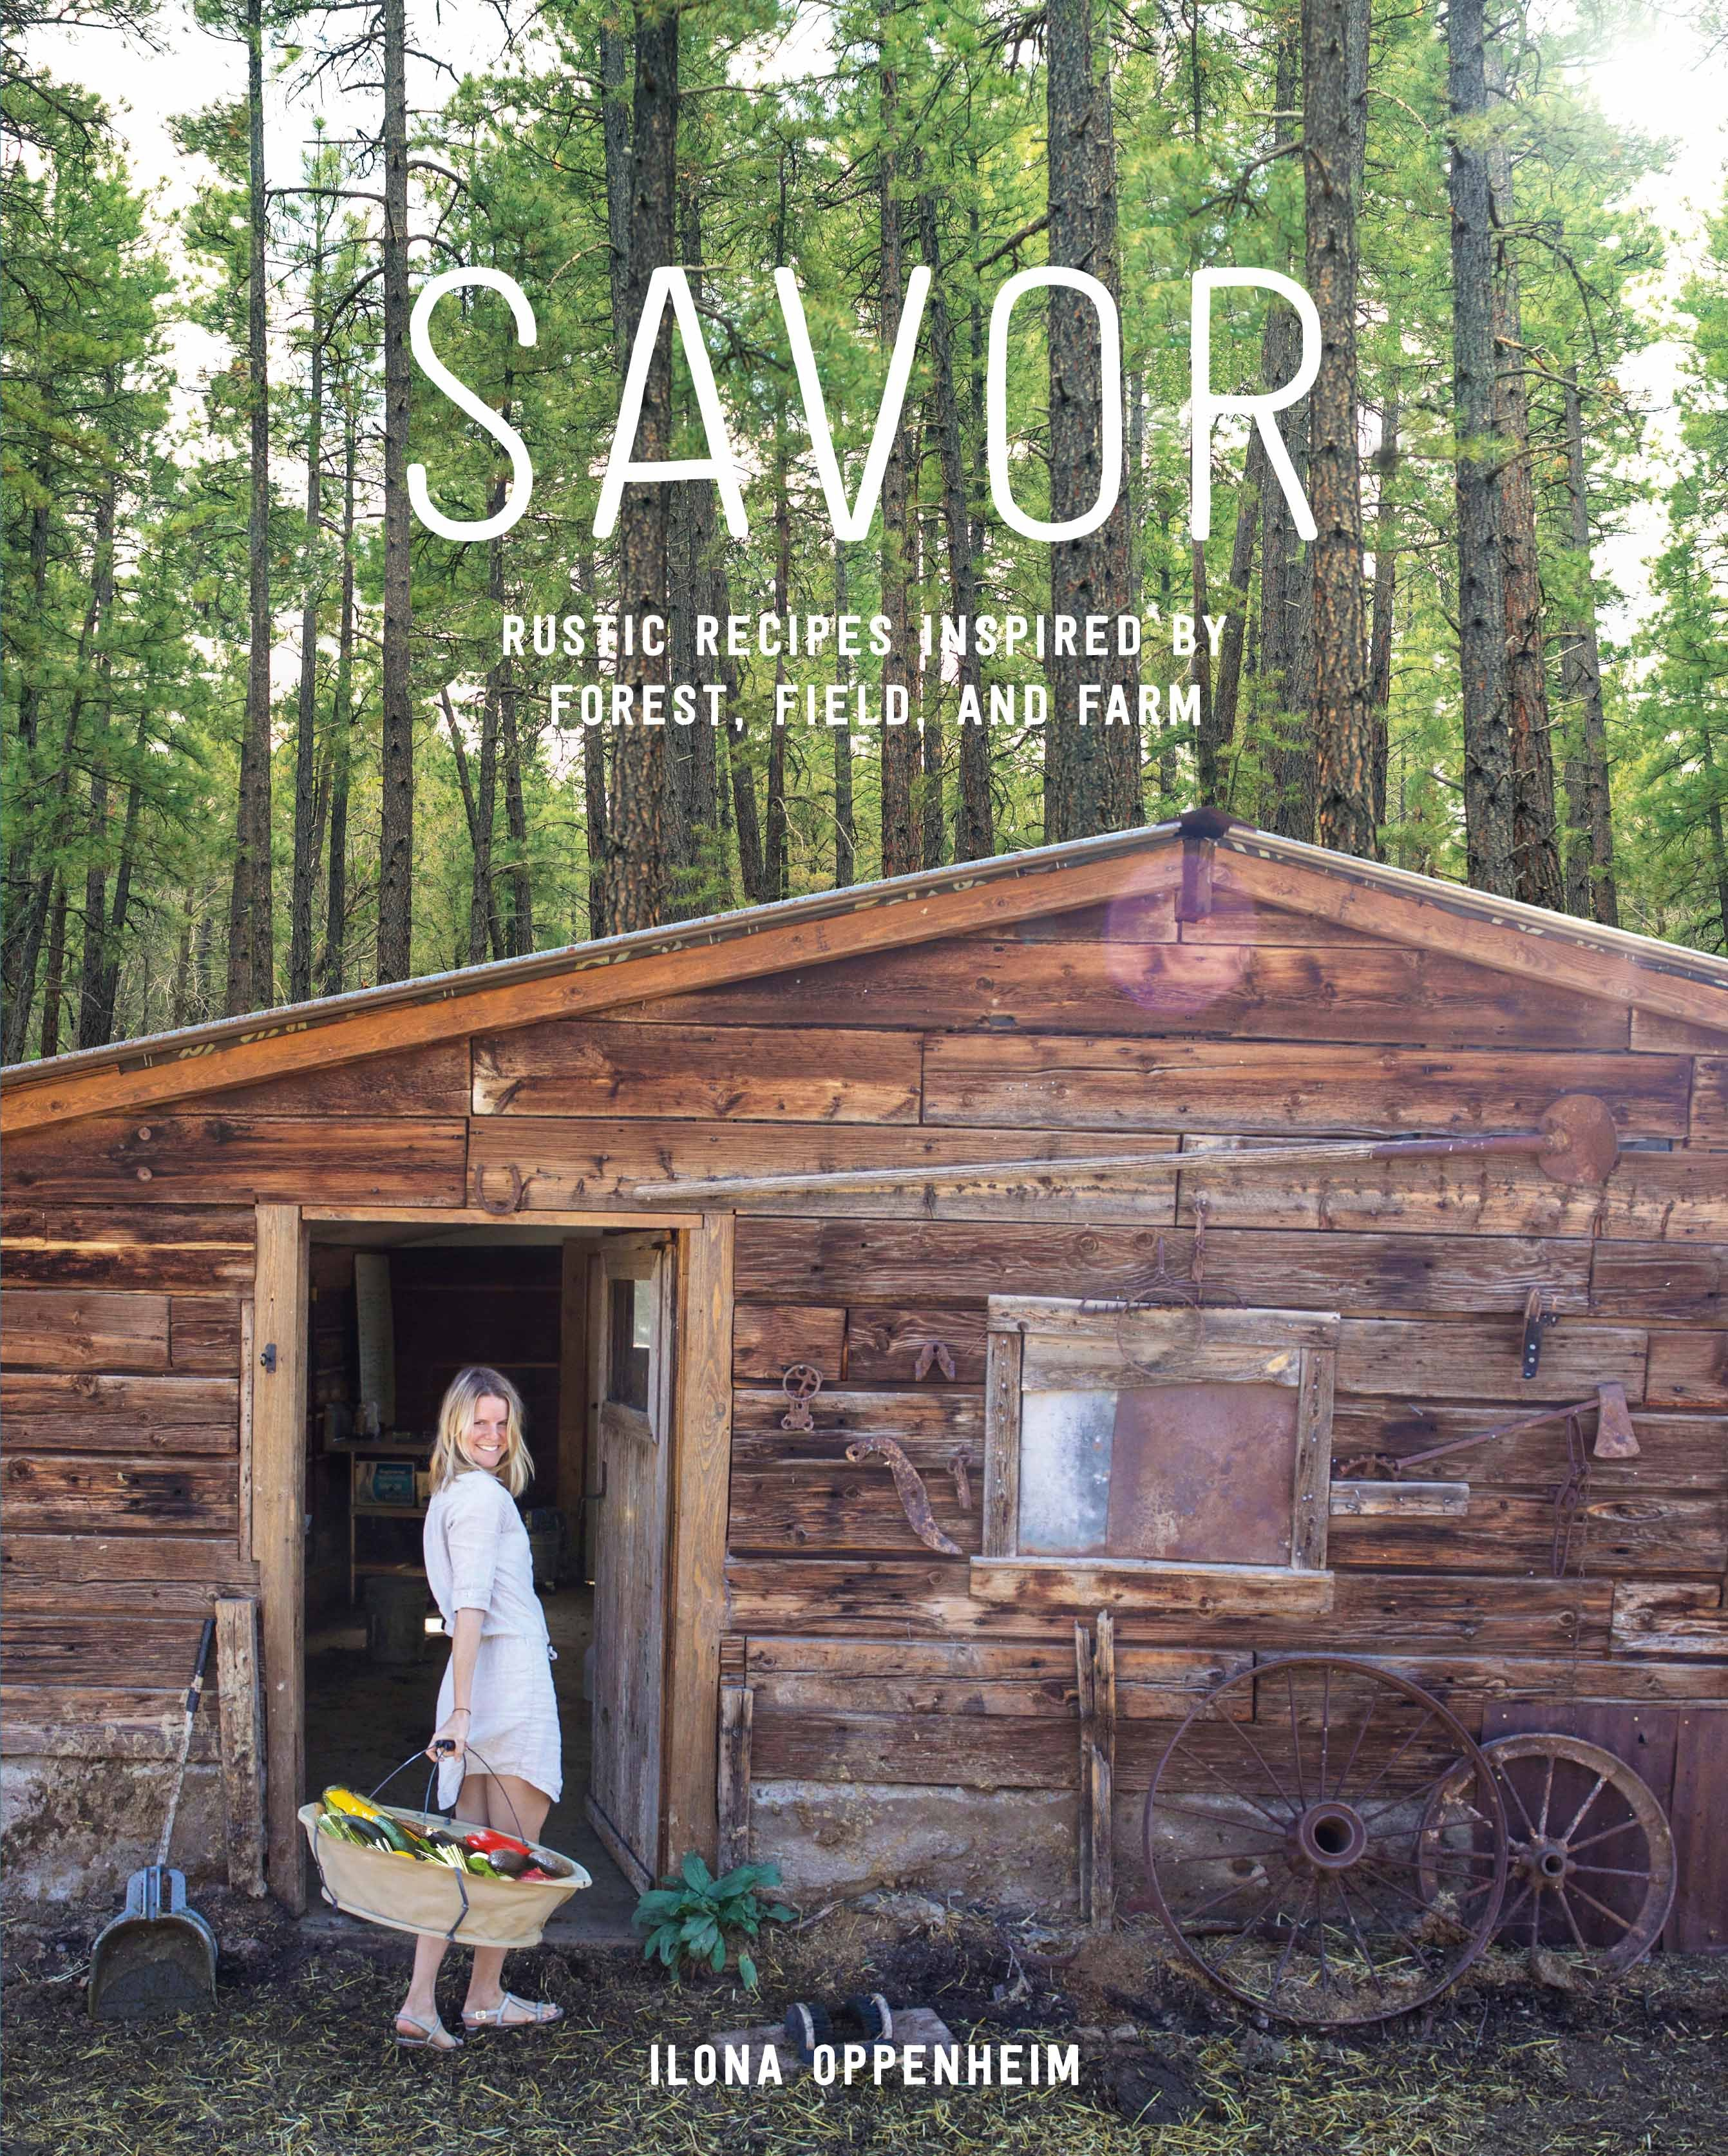 Savor: Rustic Recipes Inspired Forest, Field, and Farm by Ilona Oppenheim